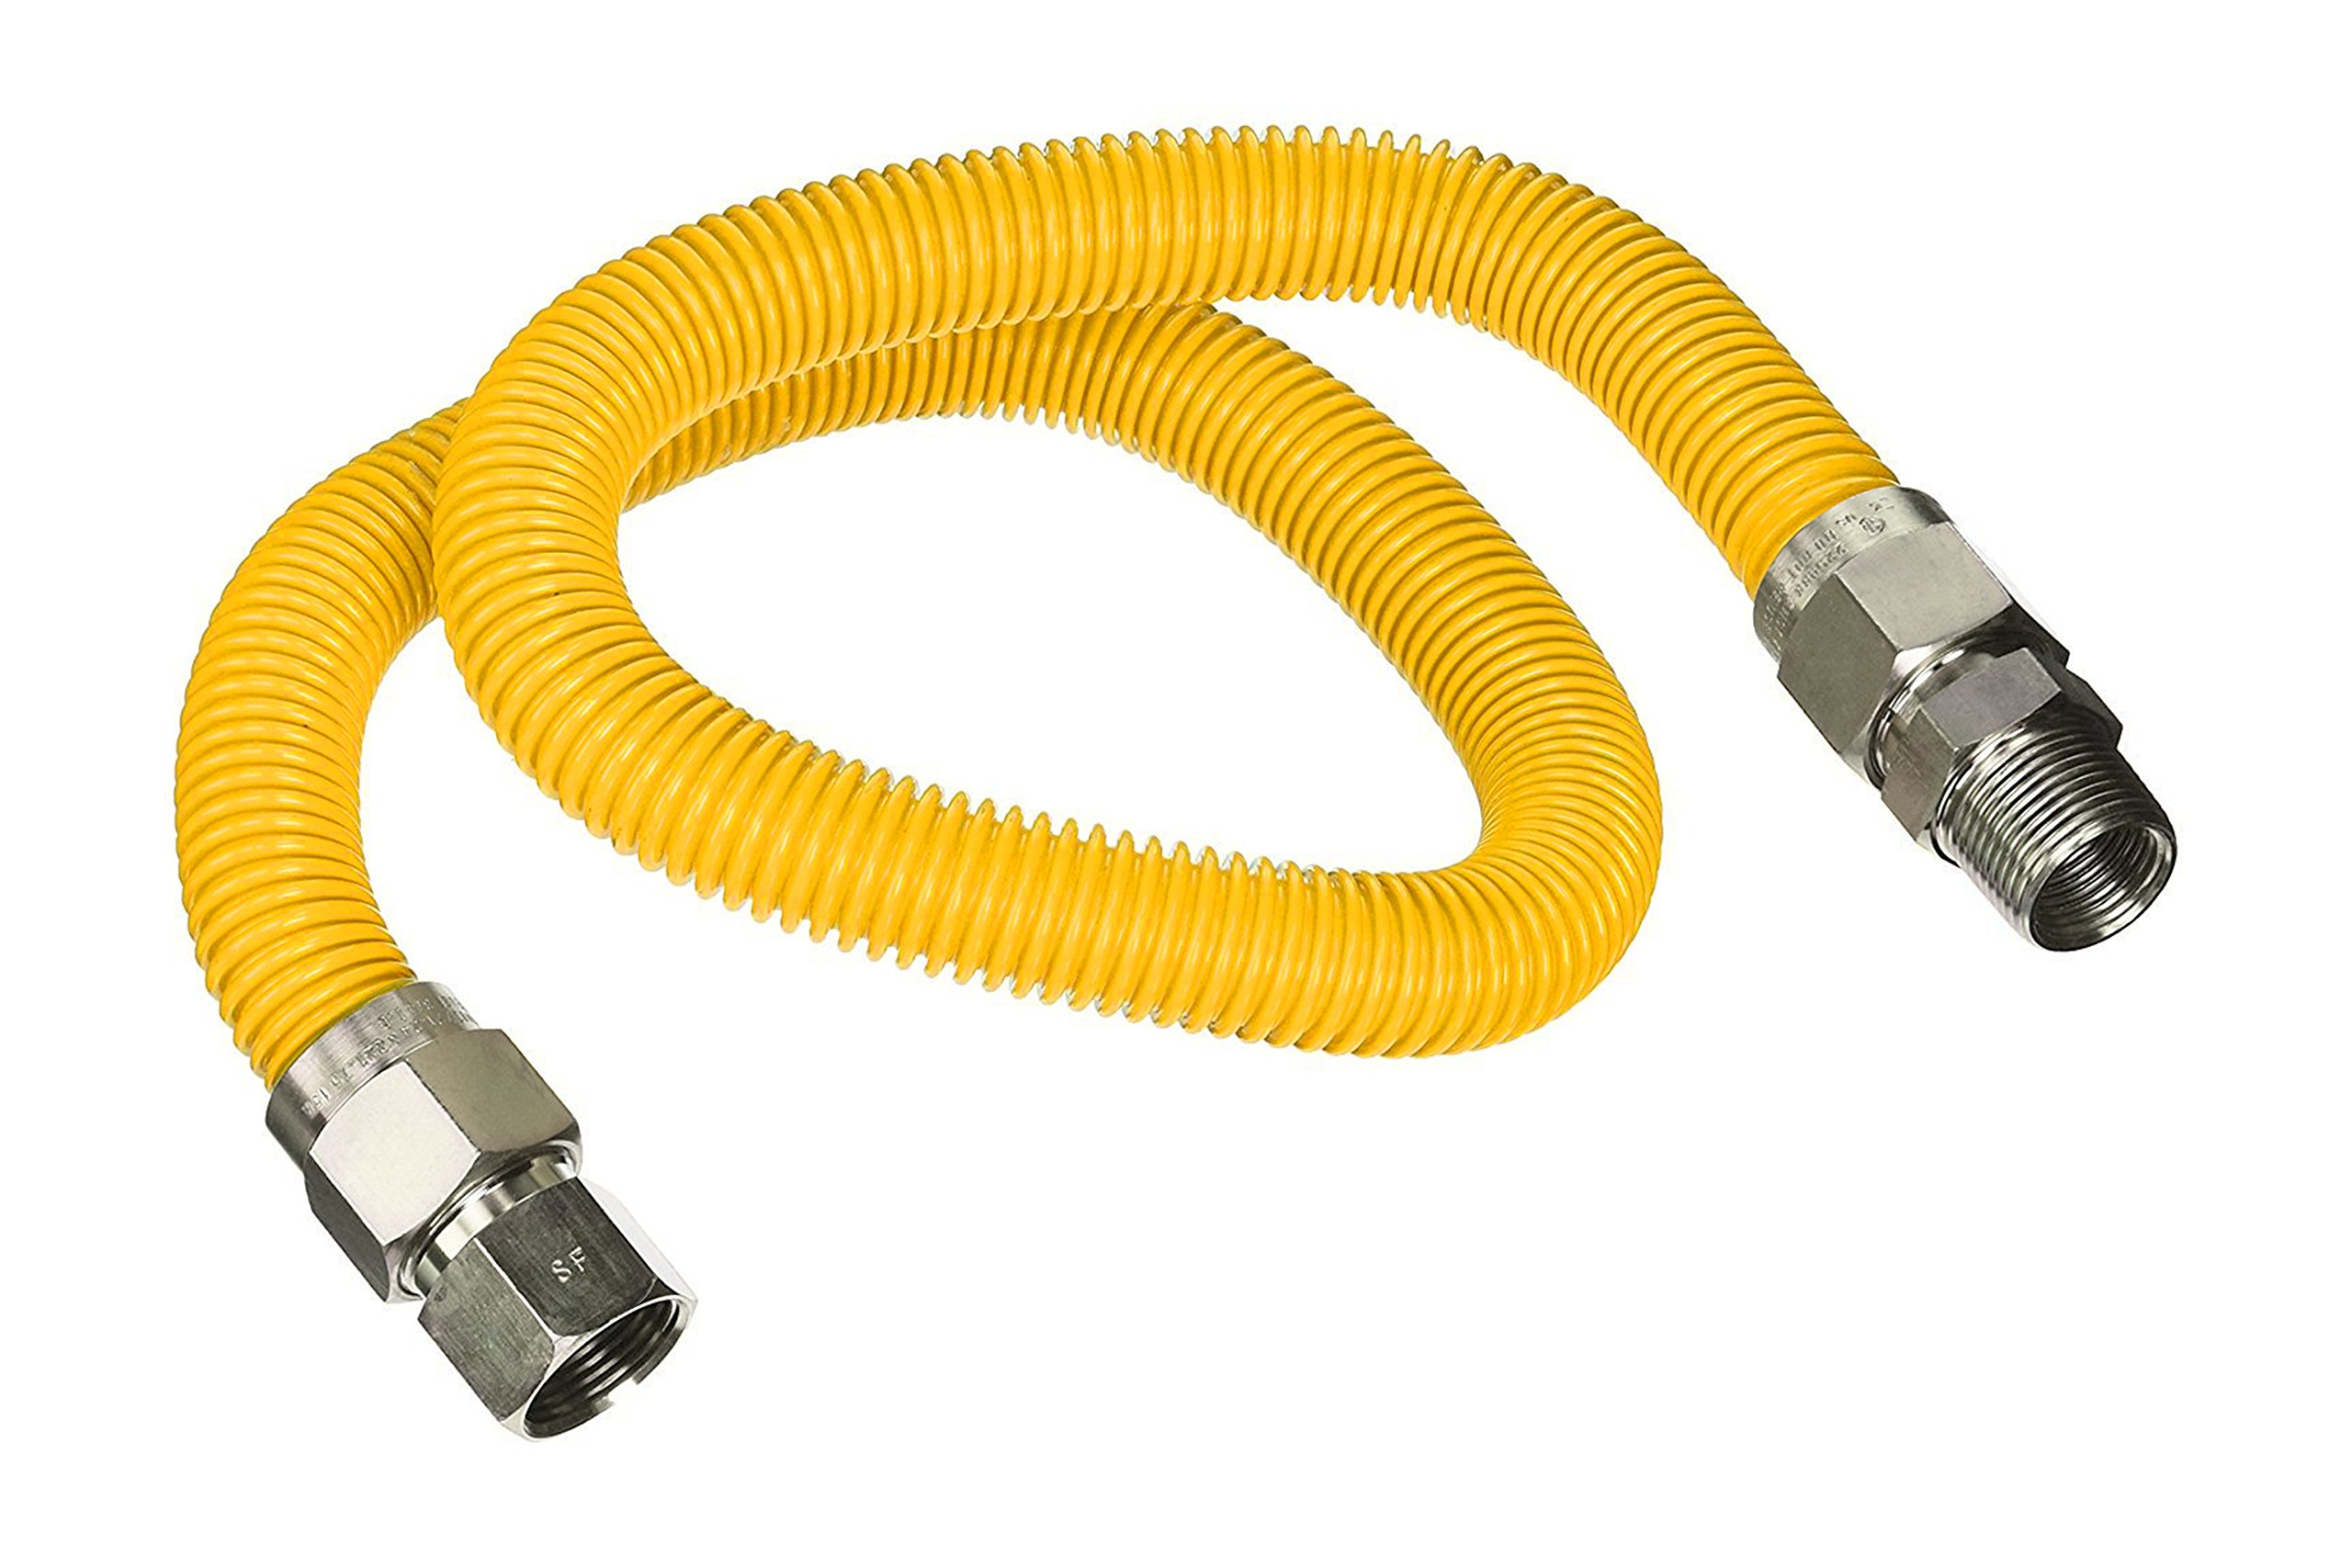 Flextron FTGC-YC12-60C 60 Inch Flexible Epoxy Coated Gas Line Connector with 5/8 Inch Outer Diameter & 1/2 Inch FIP x 1/2 Inch MIP Fittings, Yellow/Stainless Steel, Excellent Corrosion Resistance